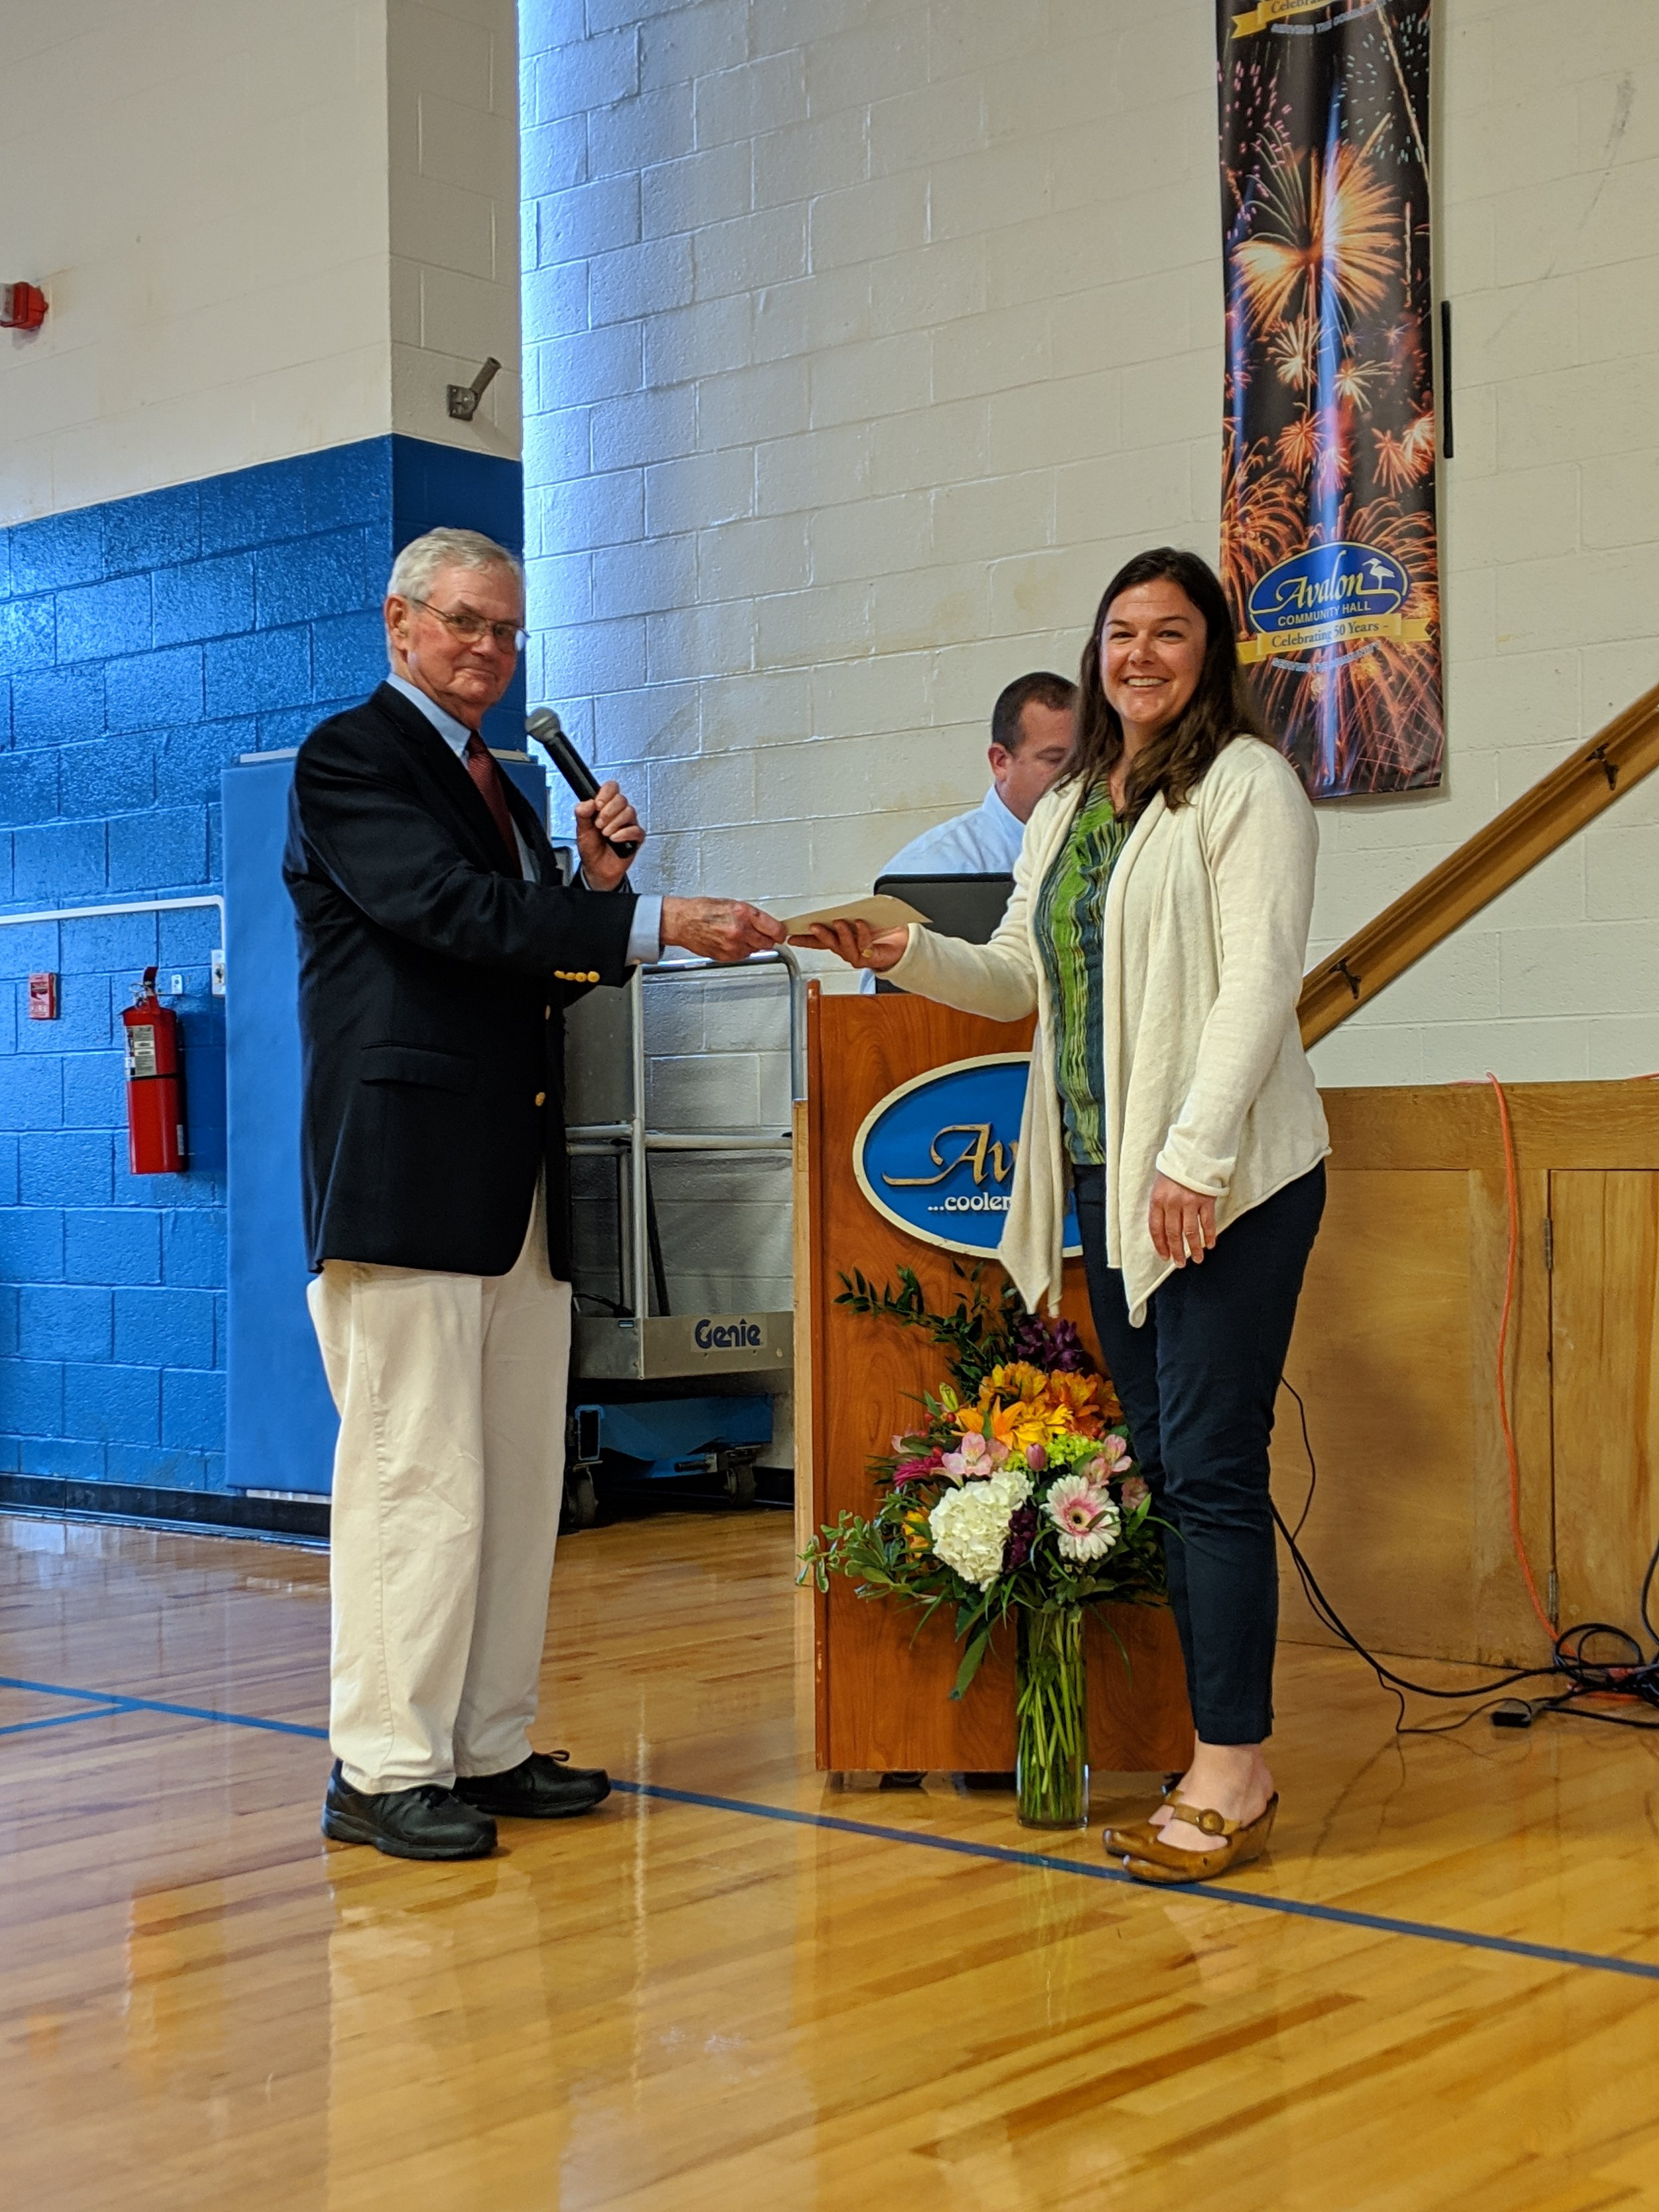 Jack Keenan presents AHLOA donation to Dr. Lisa Ferguson, accepting on behalf of The Wetlands Institute